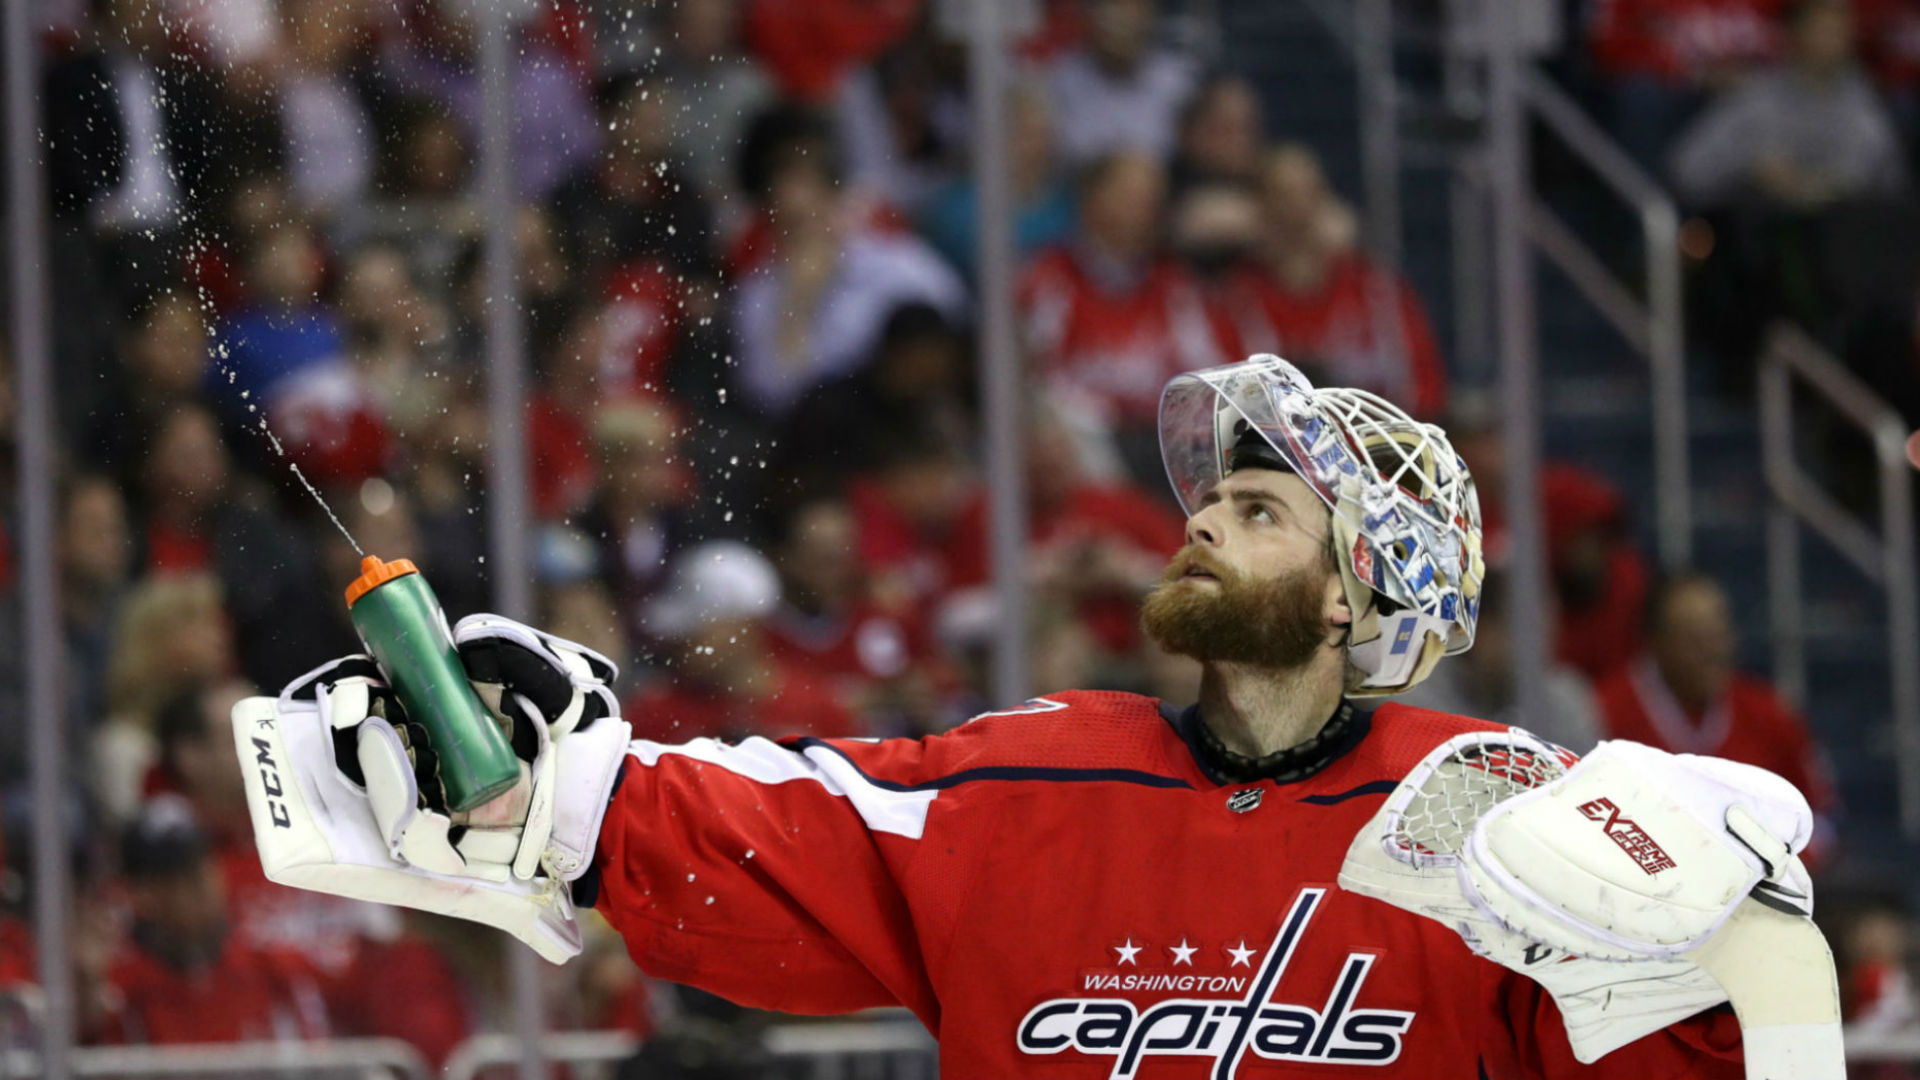 Braden Holtby's best fits for free agency include Oilers, Sharks